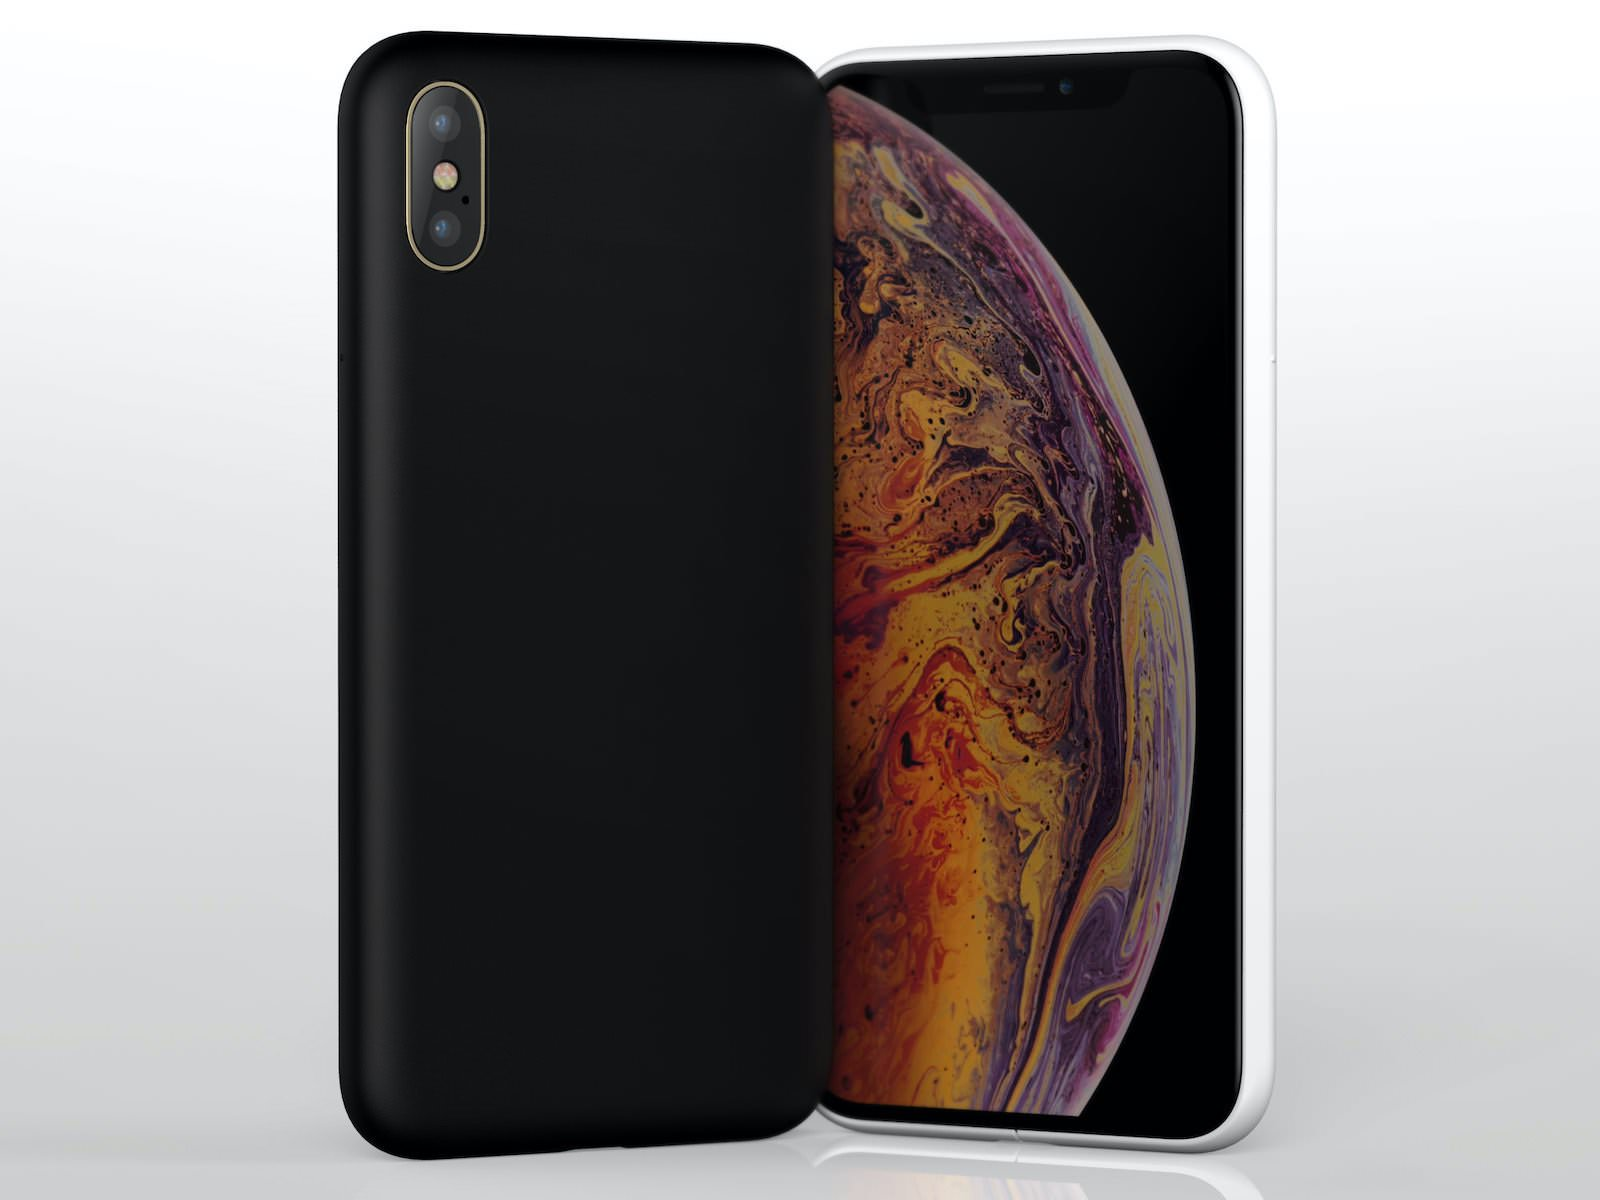 MYNUS-iPhone-XS-Case-09.jpg